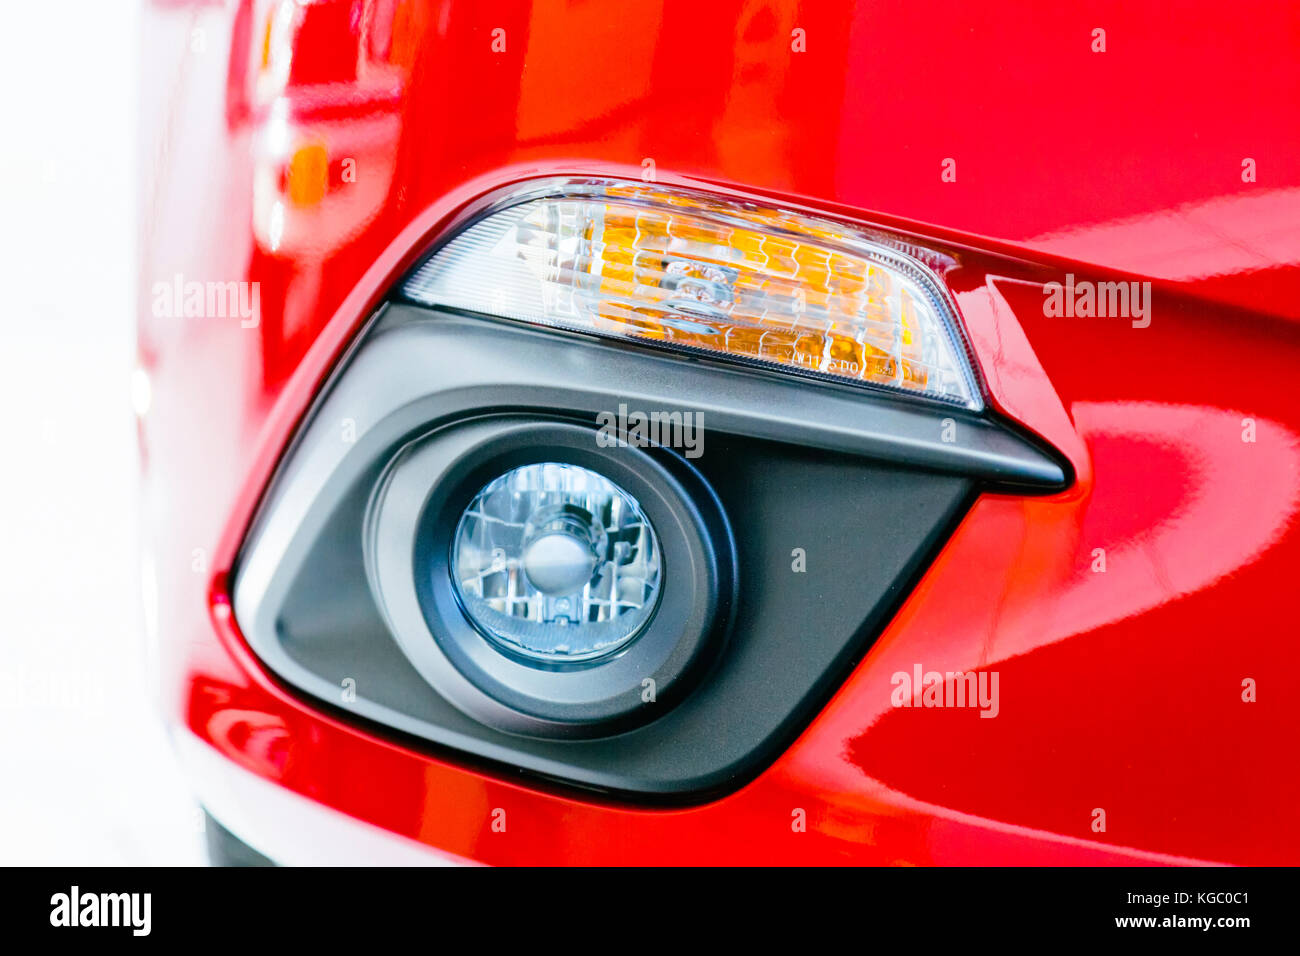 Car closeup with front daytime running lights and fog lights. Red shiny paint of a brand new modern auto vehicle - Stock Image